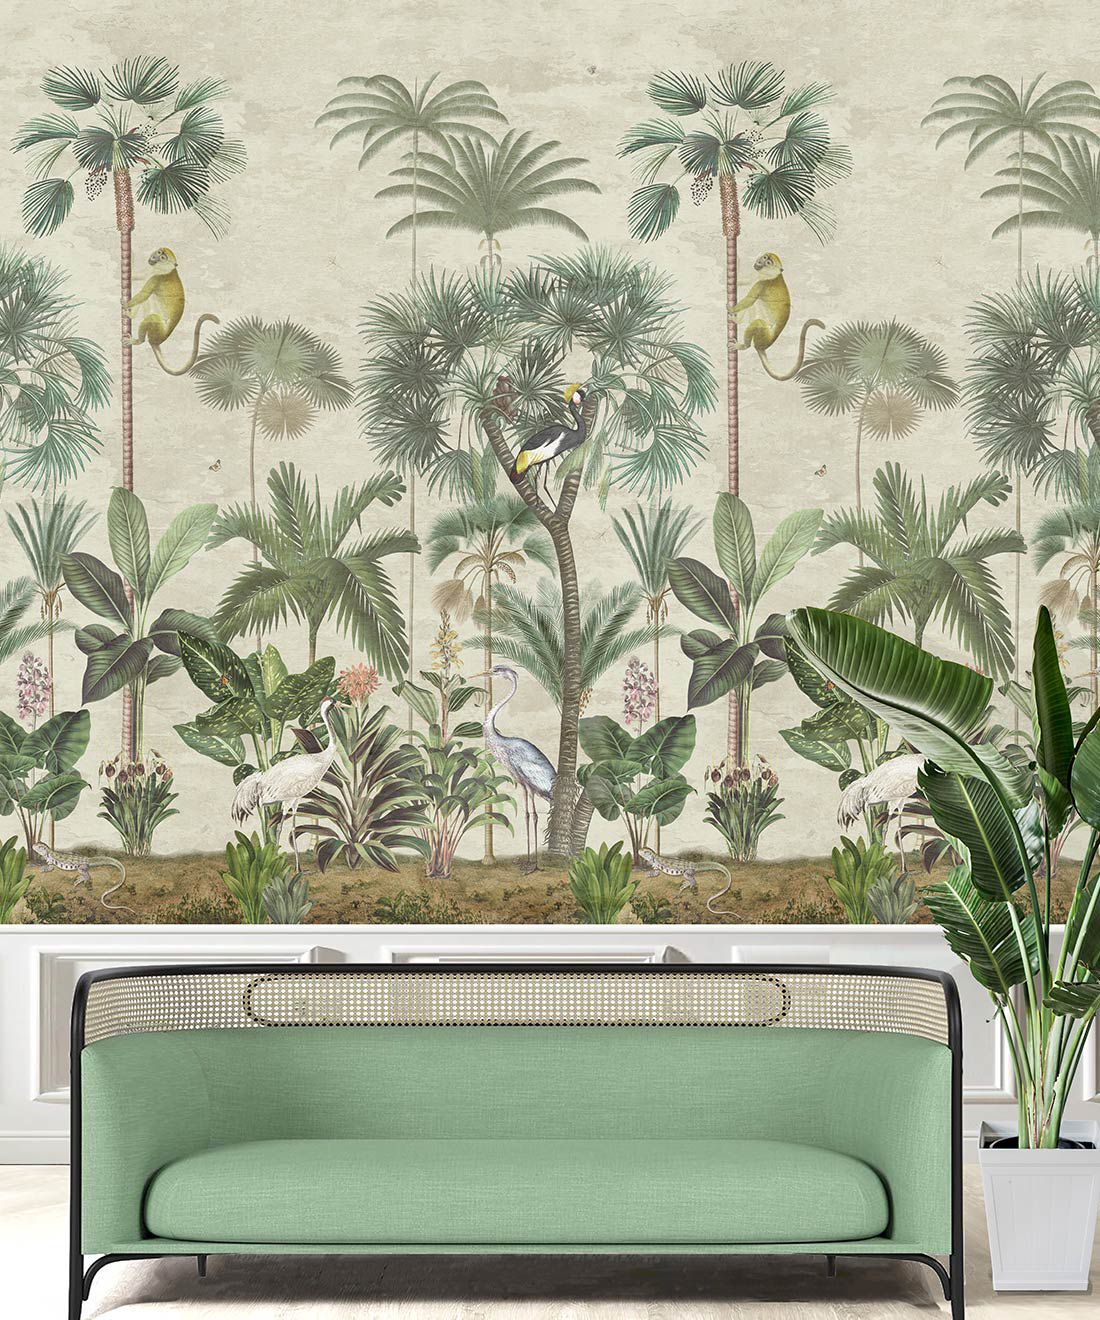 Indian Summer Wallpaper Mural •Bethany Linz • Palm Tree Mural • Aged • Insitu with mint Green sofa